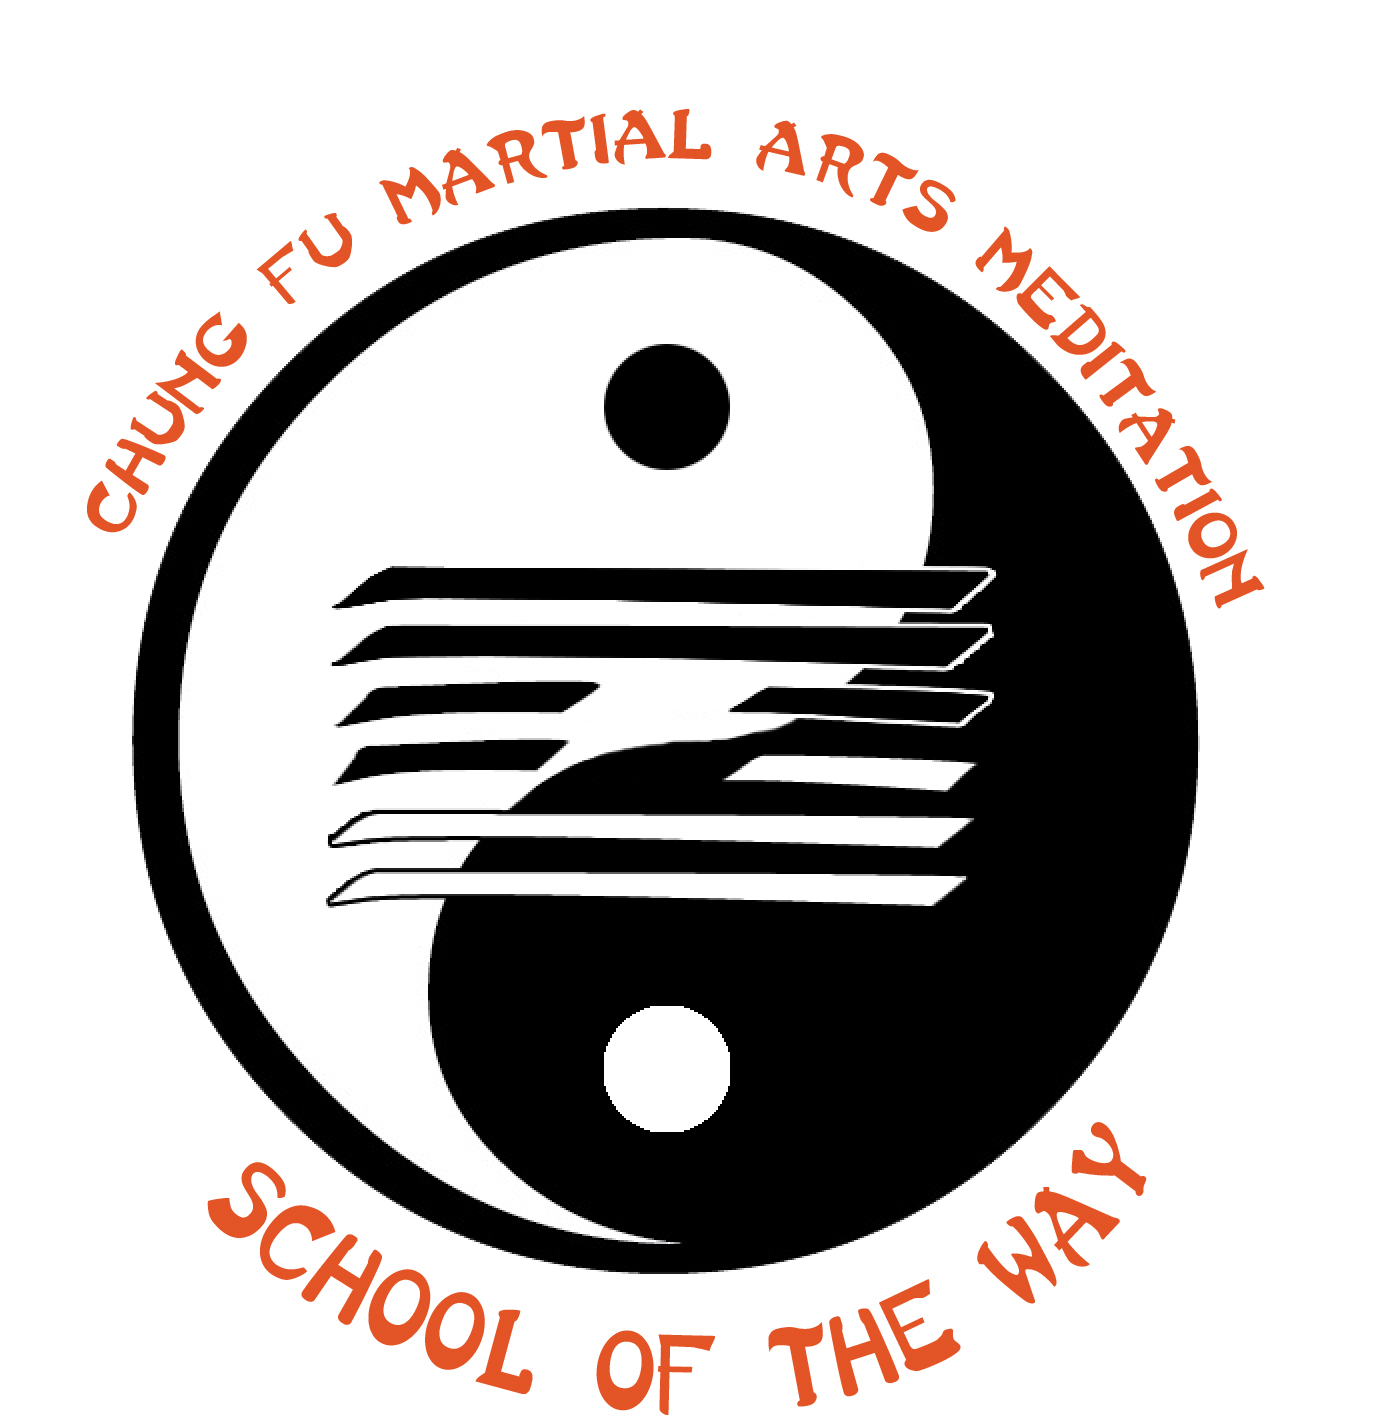 Terry Hodgkinson Sifu's martial arts school